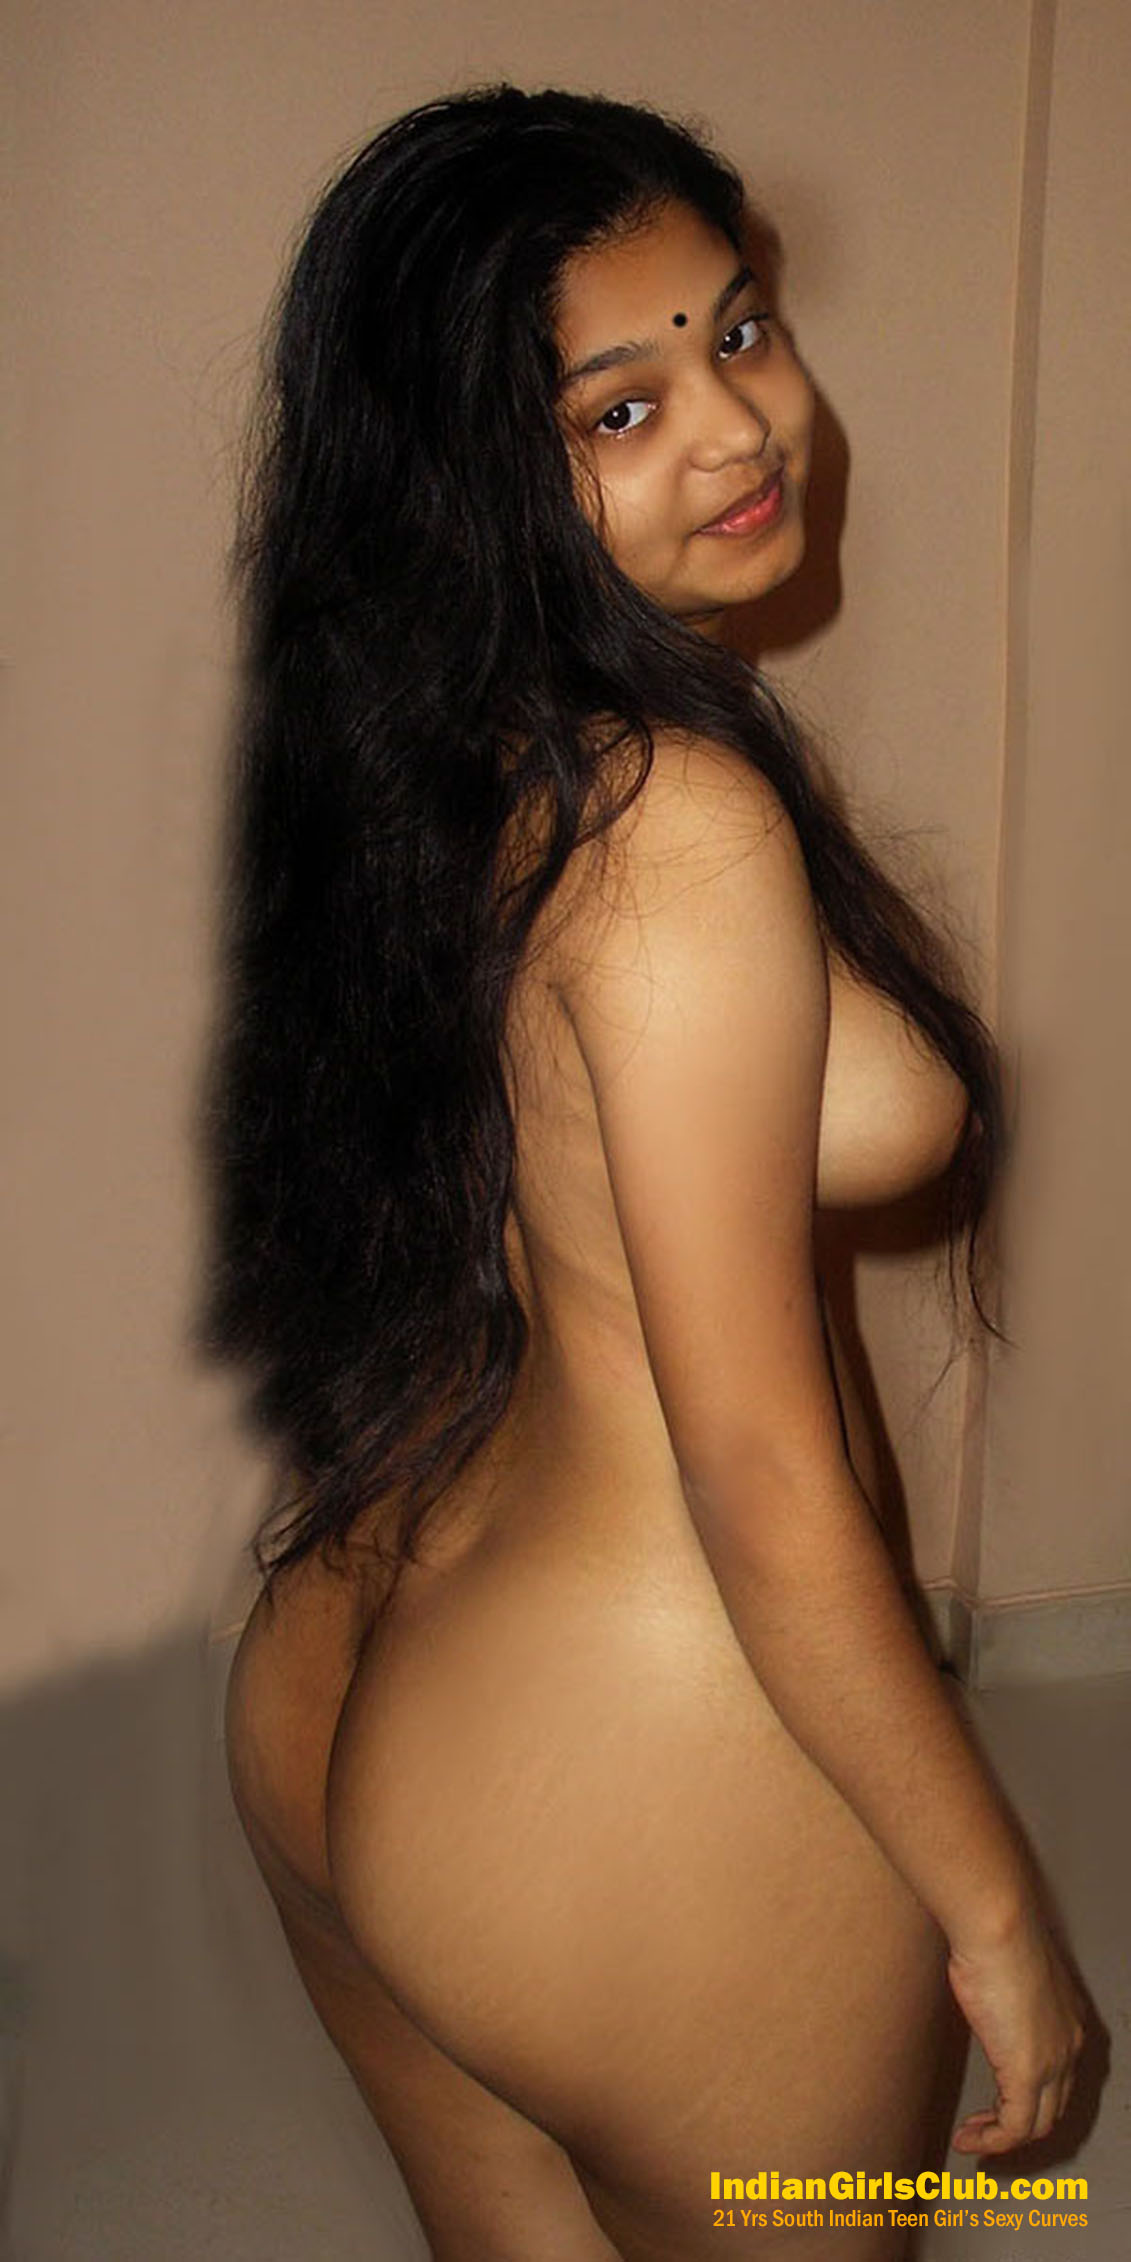 girls indianp Nude from souuth